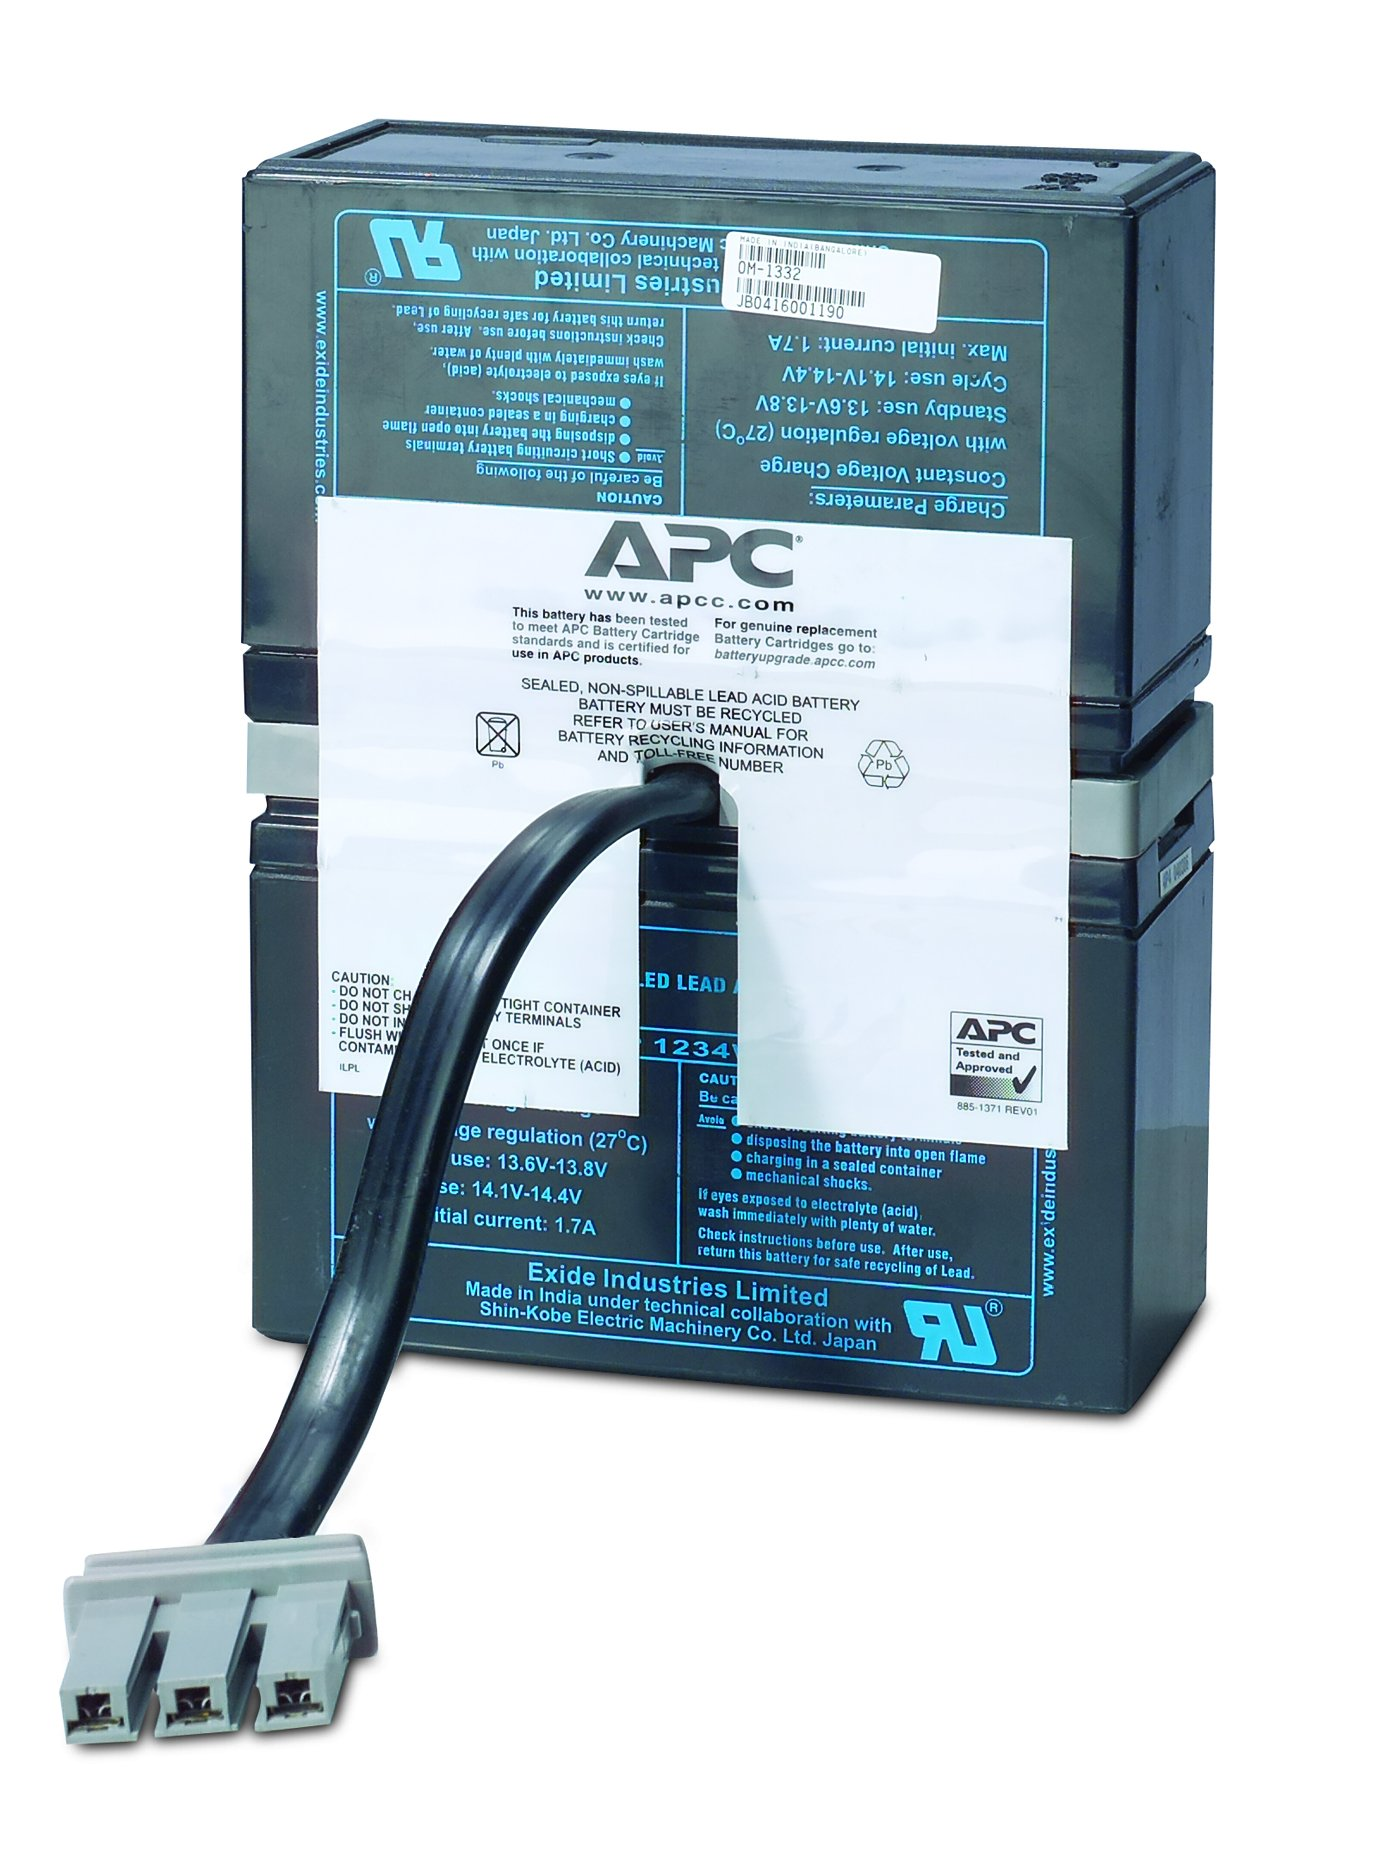 APC UPS Replacement Battery Cartridge for APC UPS Models BR1500, BX1500 and select others (RBC33) by APC